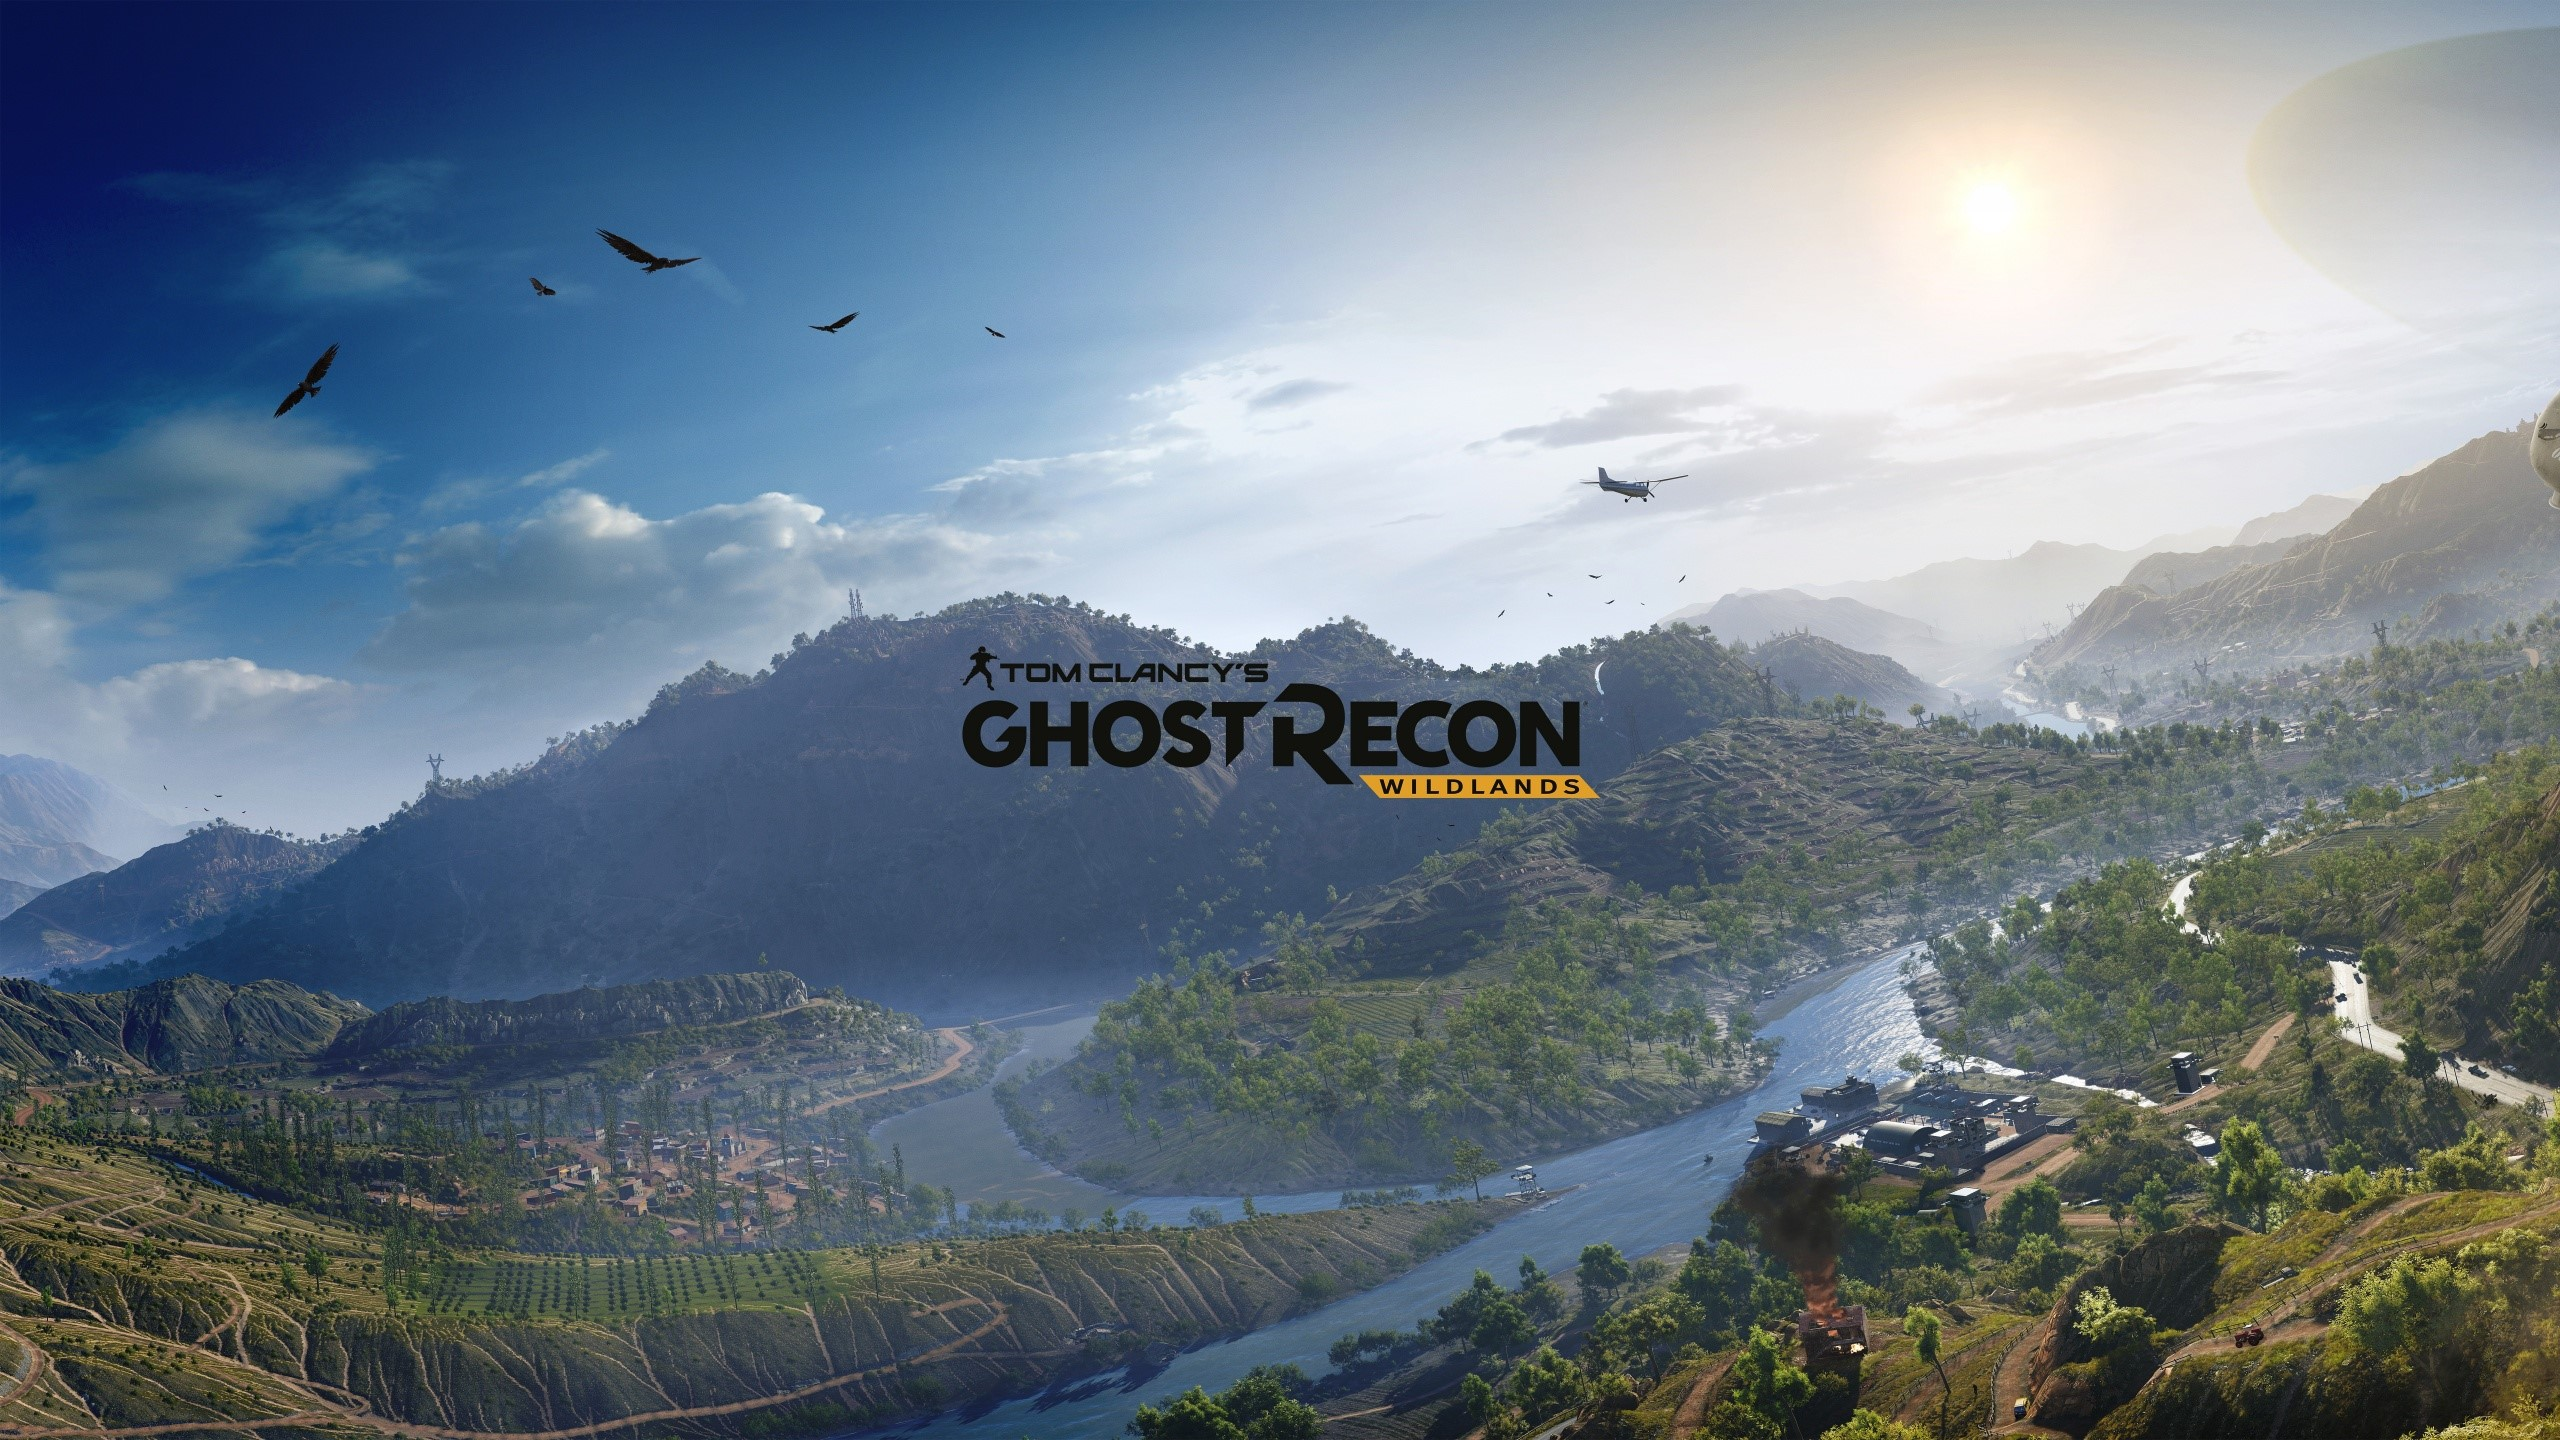 Wallpaper Juego Ghost Recon Wildlands Images